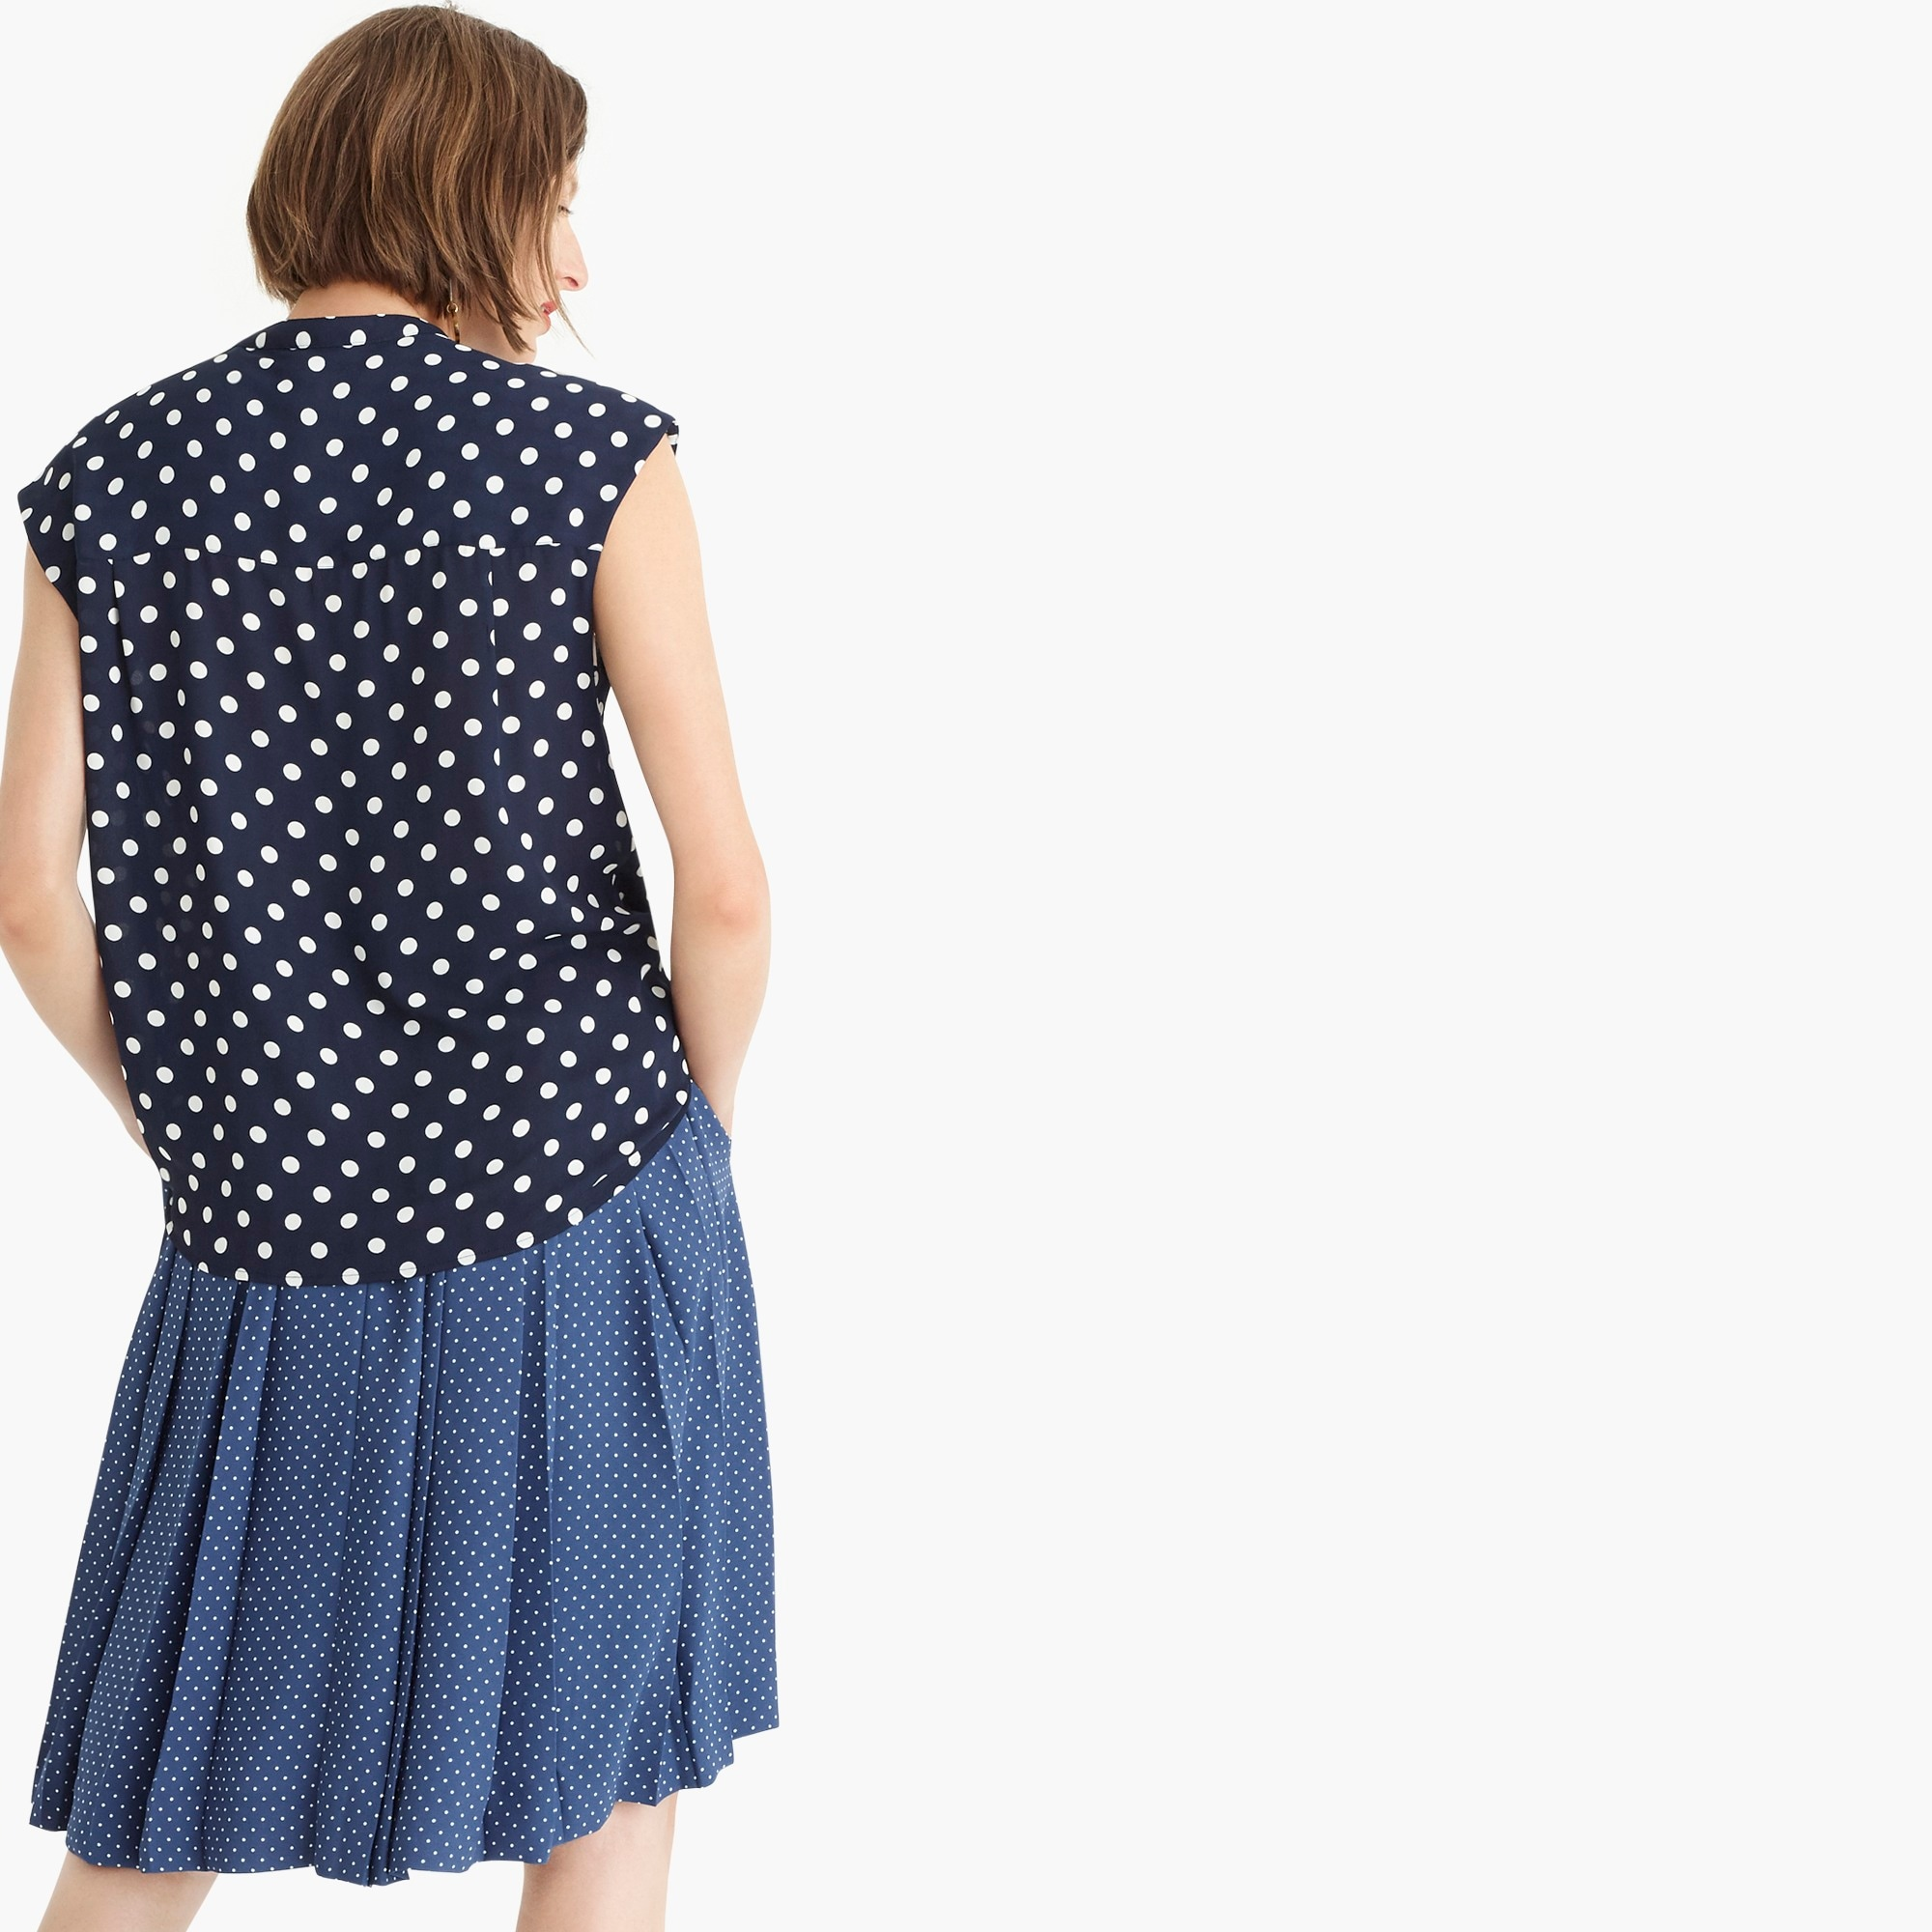 Image 5 for Petite drapey cap-sleeve top in polka dot